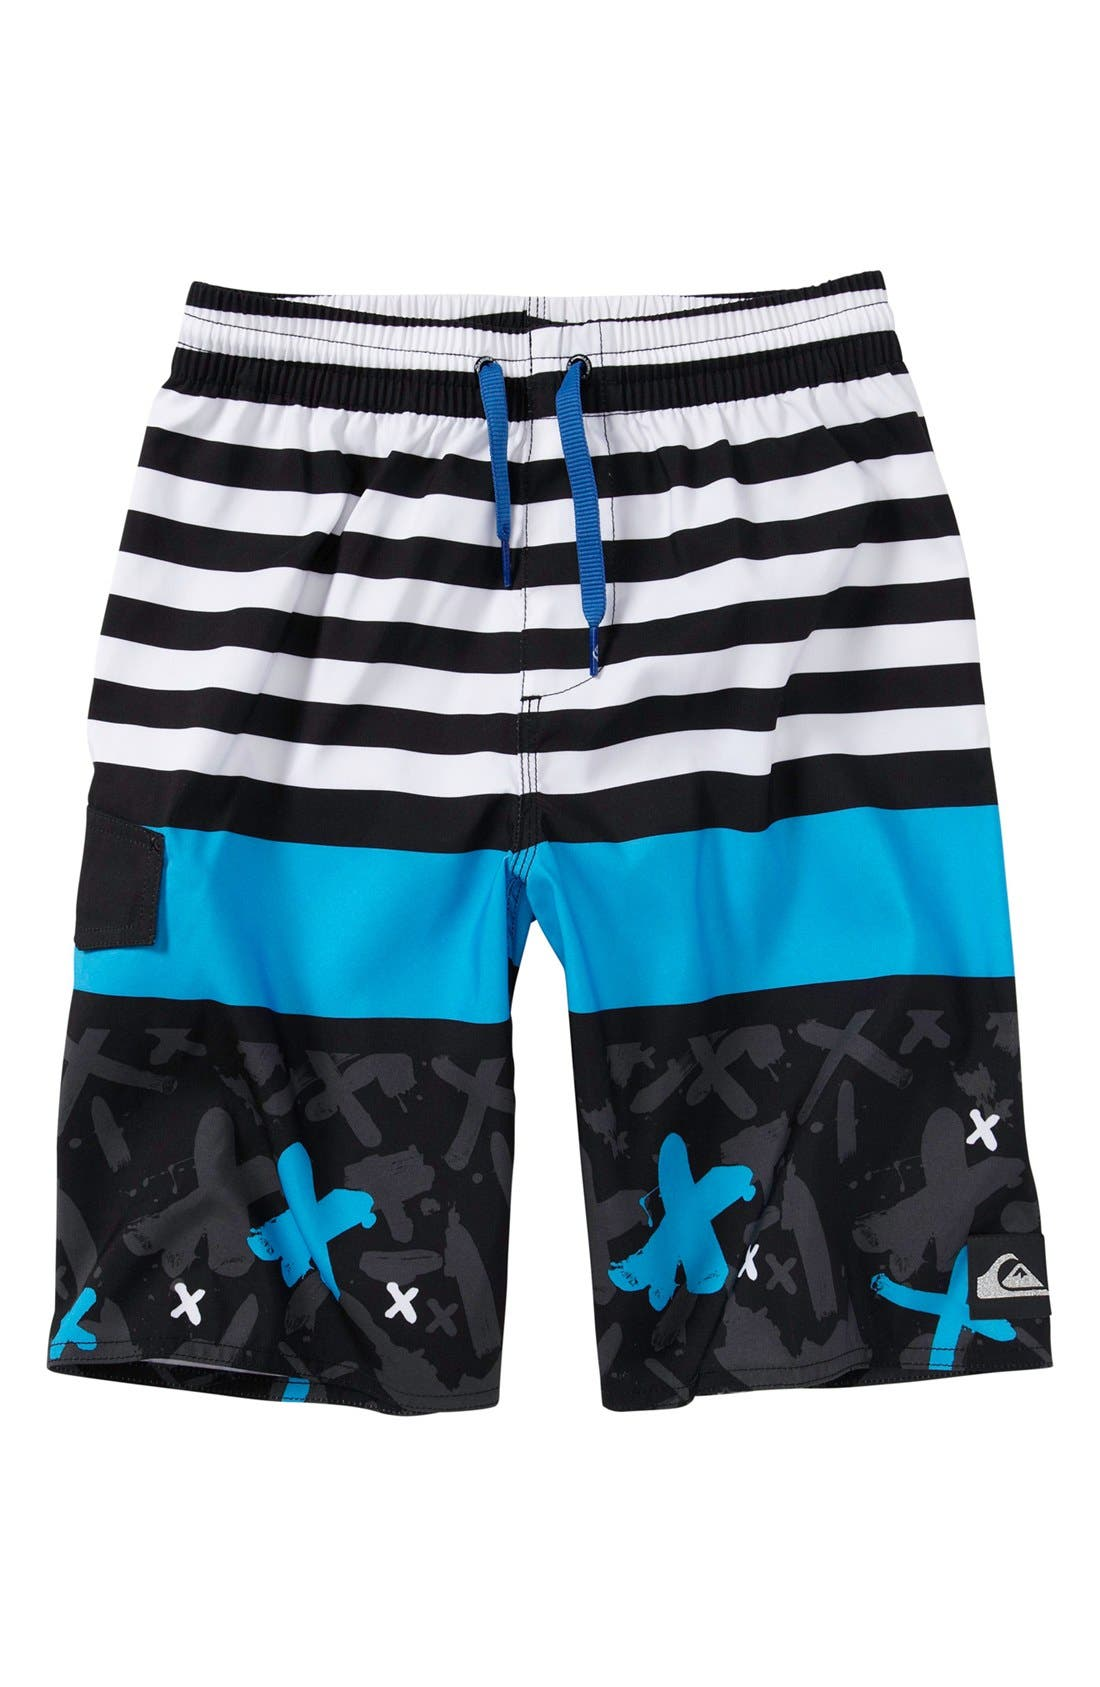 Alternate Image 1 Selected - Quiksilver 'Way Out Volley' Board Shorts (Toddler Boys)